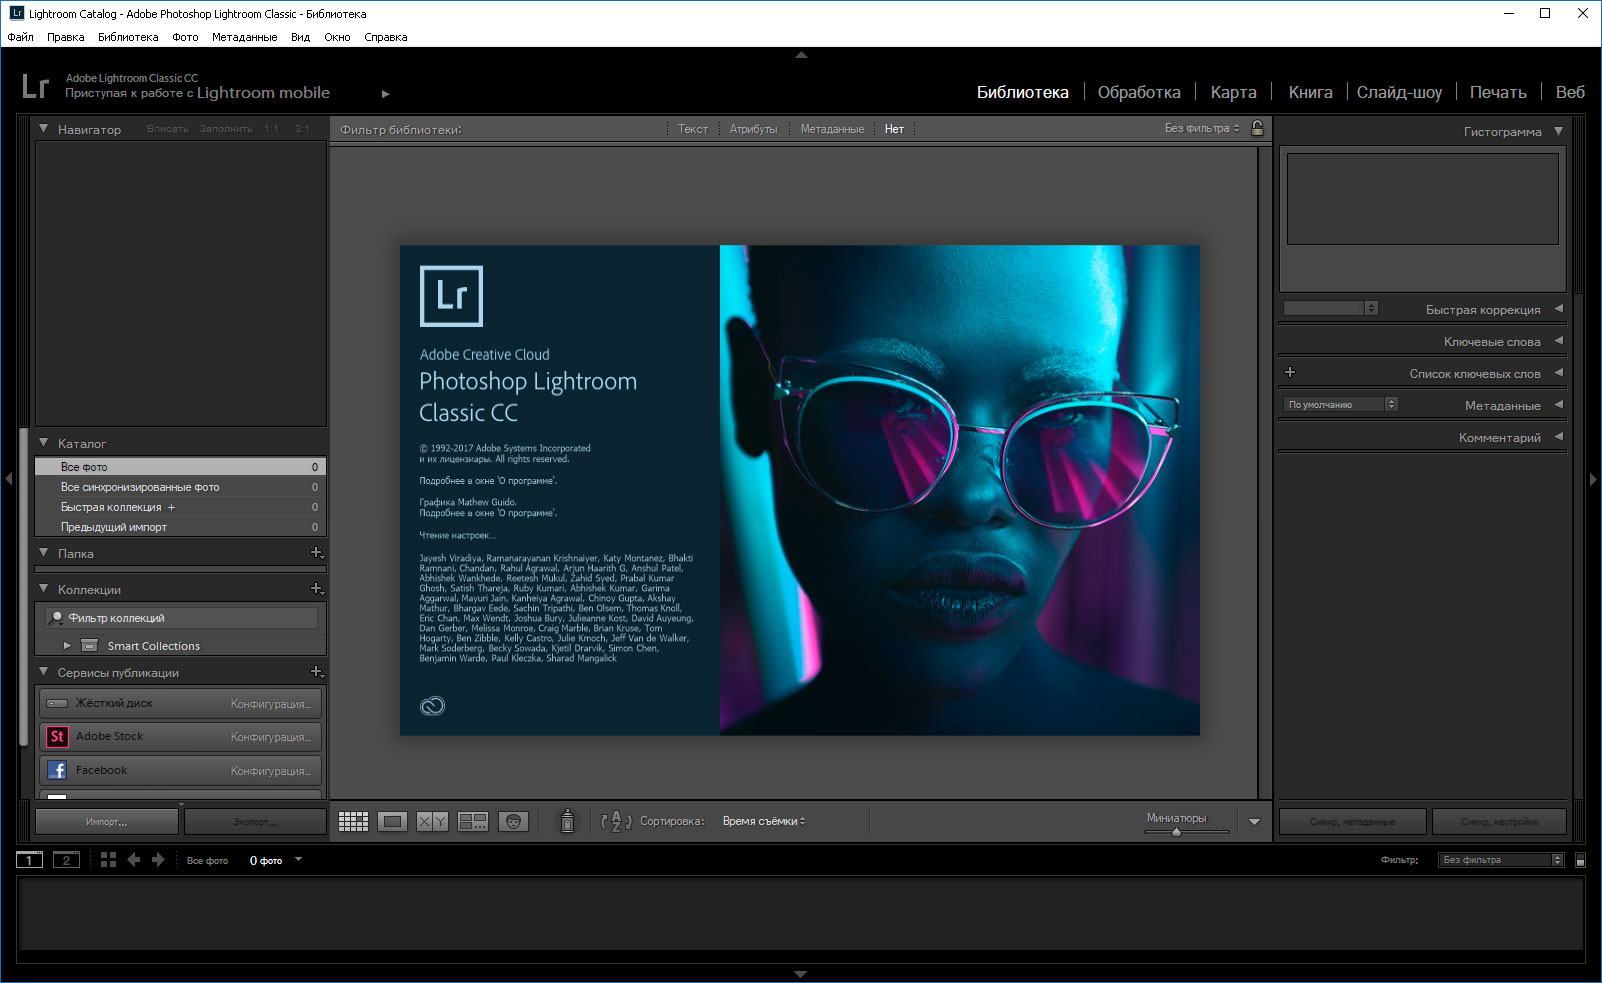 Adobe Photoshop Lightroom Classic CC 2018 7.0.1.10 [x64] (2017) PC | Portable by XpucT